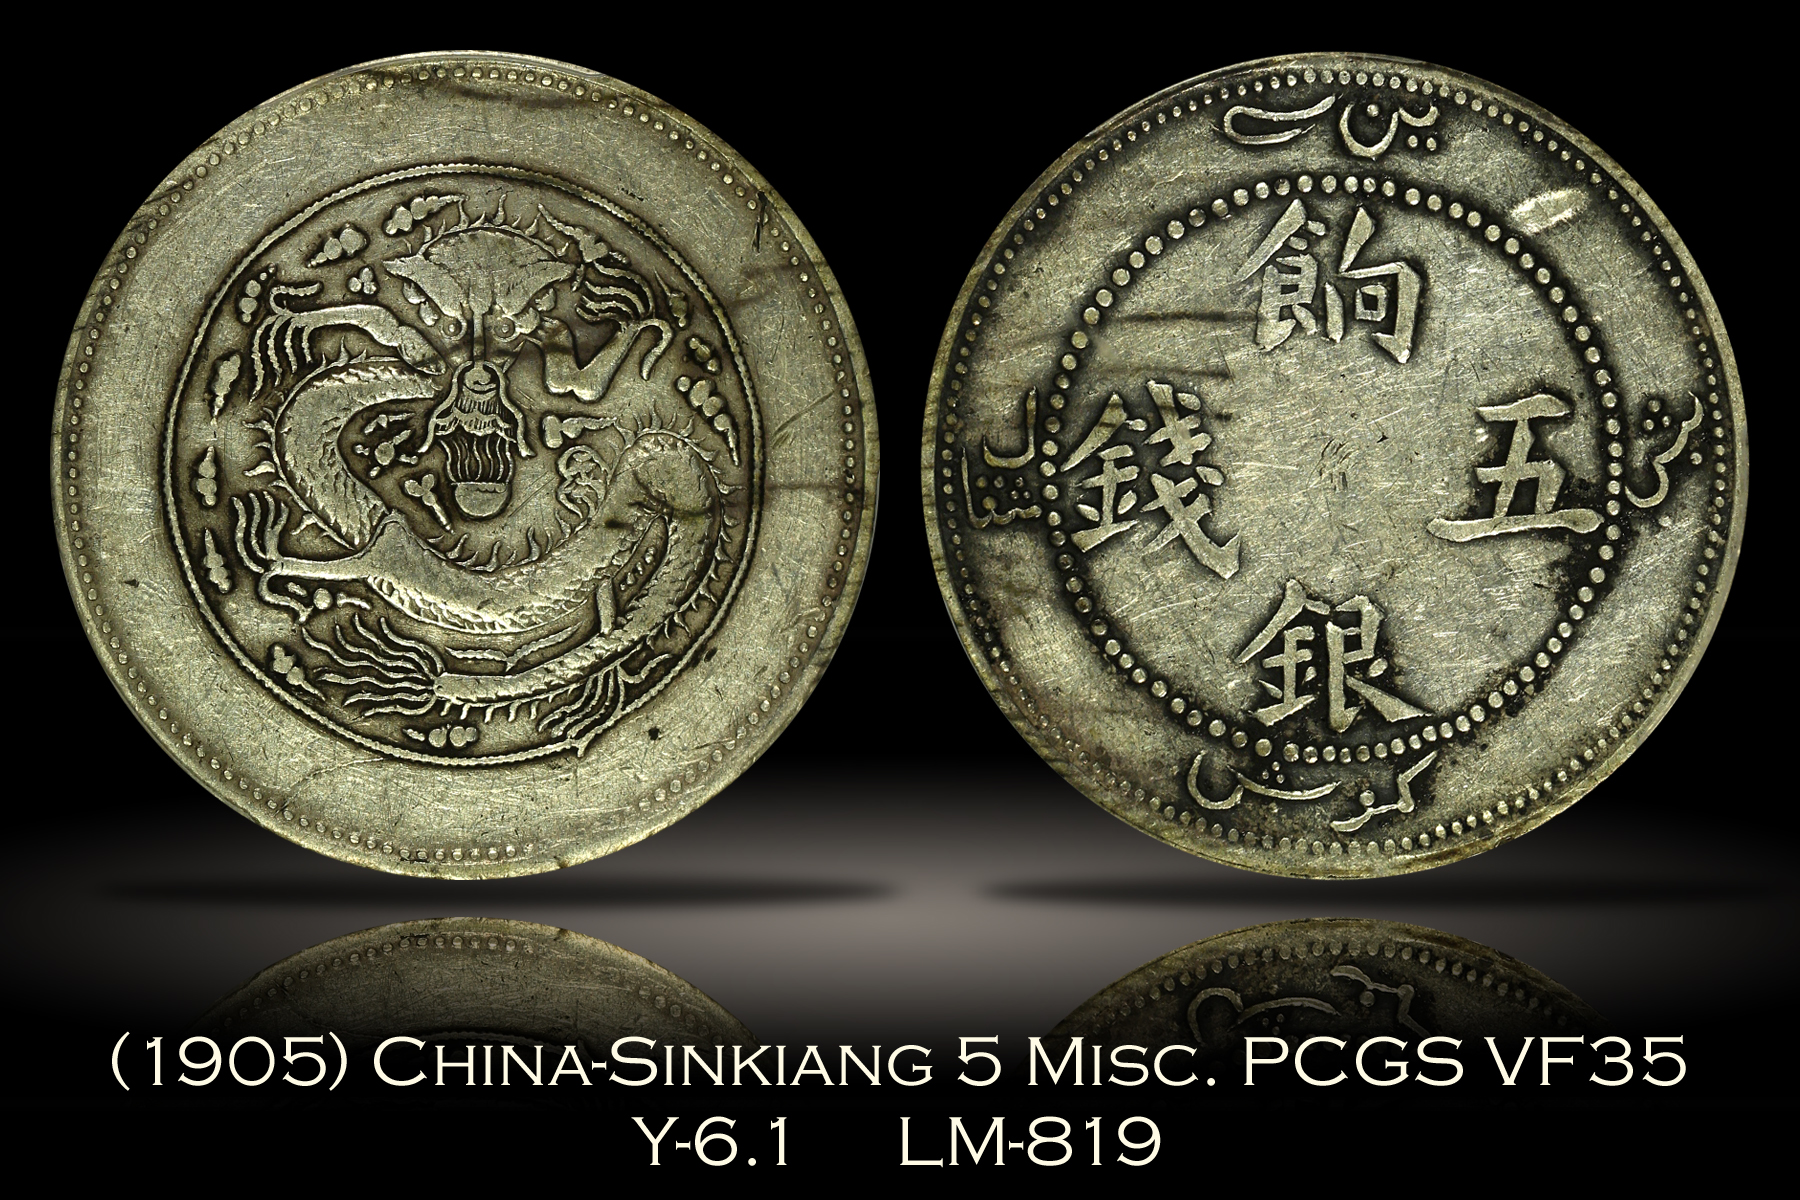 1905 China Sinkiang 5 Misc Y-6.1 LM-819 PCGS VF35